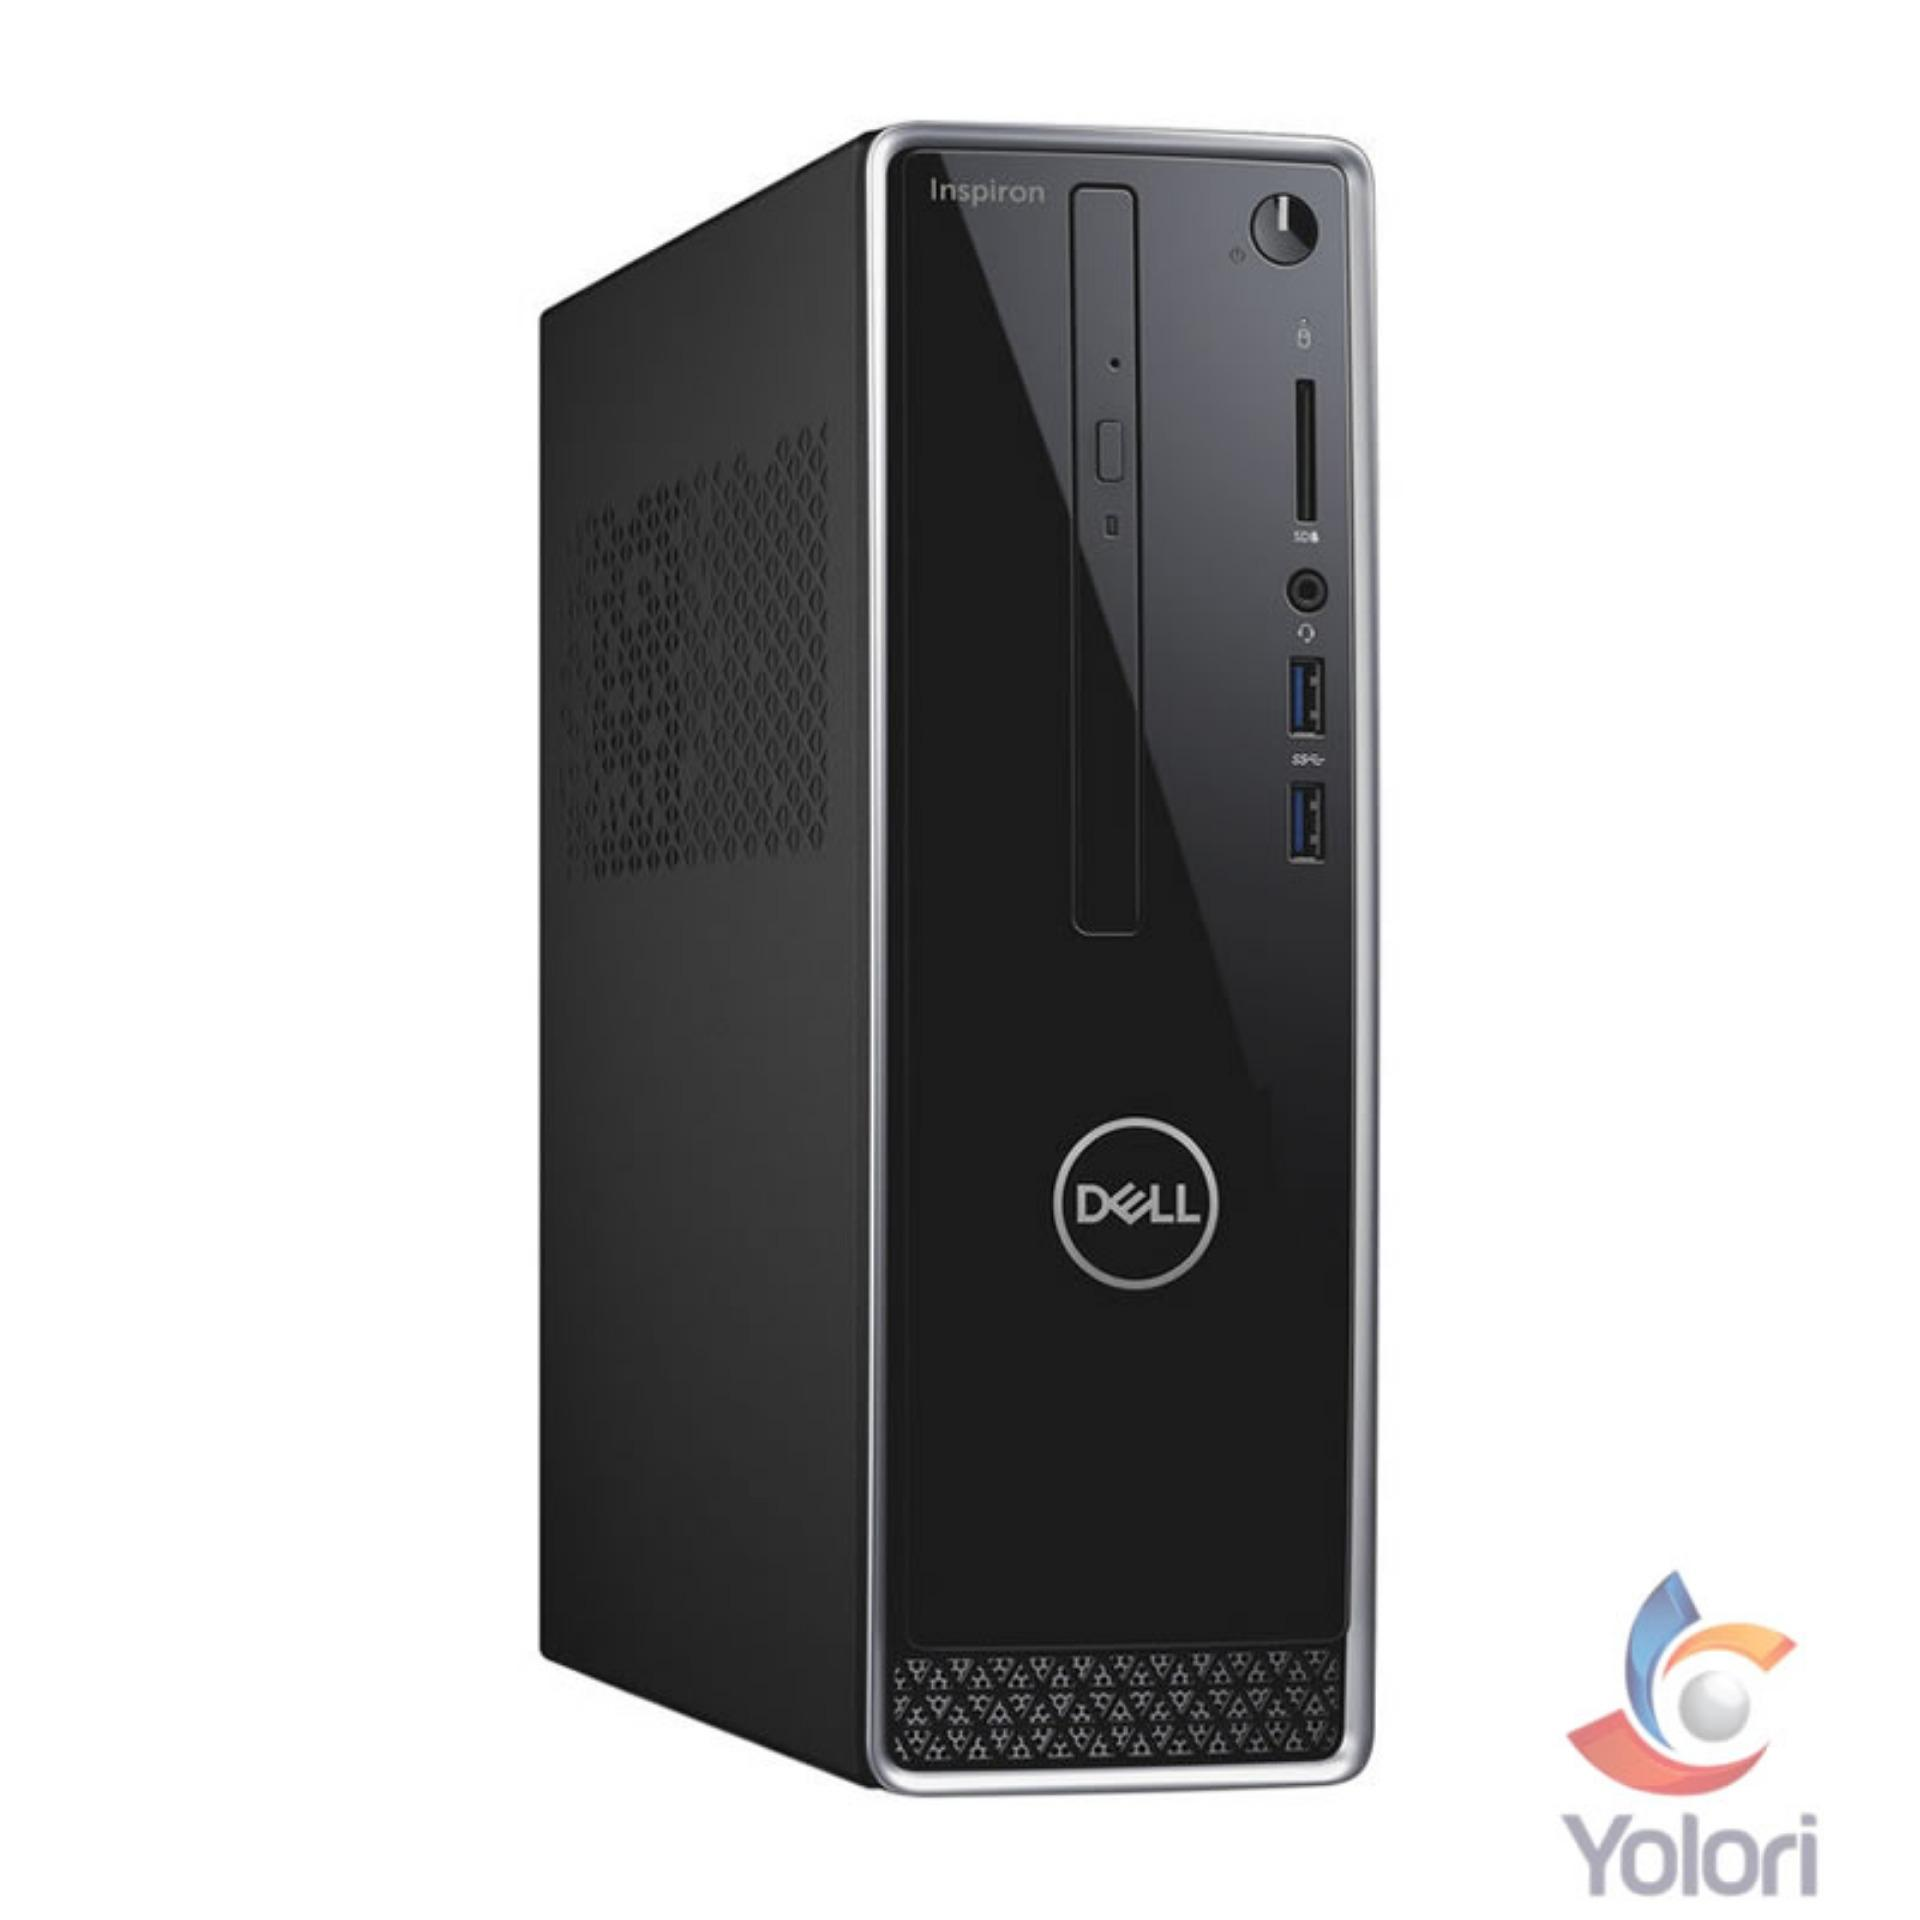 Dell Inspiron 3470 SFF [Ci3-8100, 4GB, 1TB, Intel HD, Windows 10] + Dell Monitor E2016HV